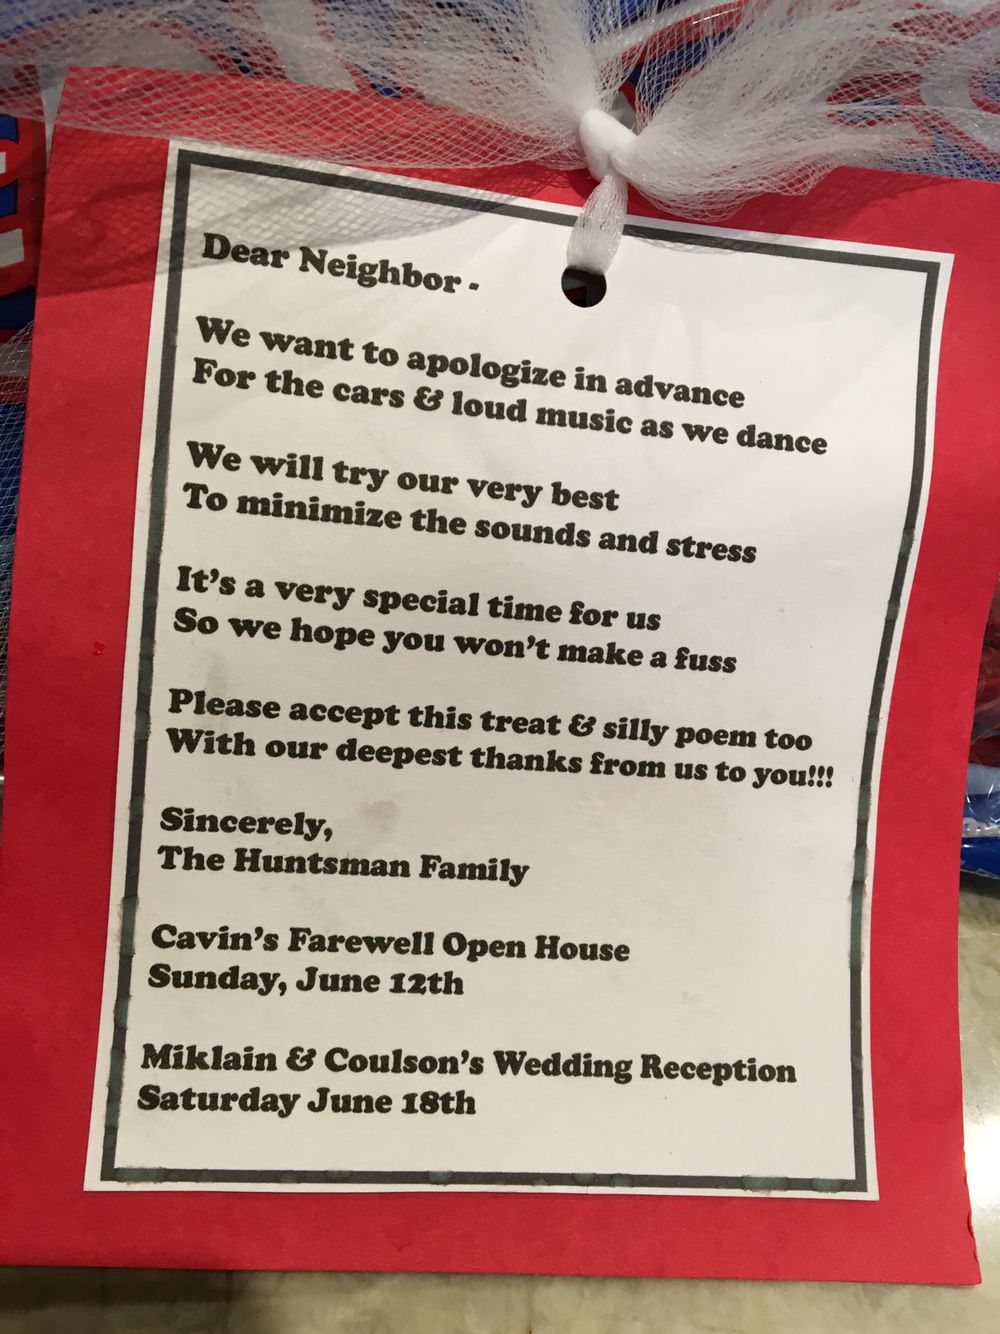 Neighbor Gift To Warn Them Of A Party Amp Wedding Reception